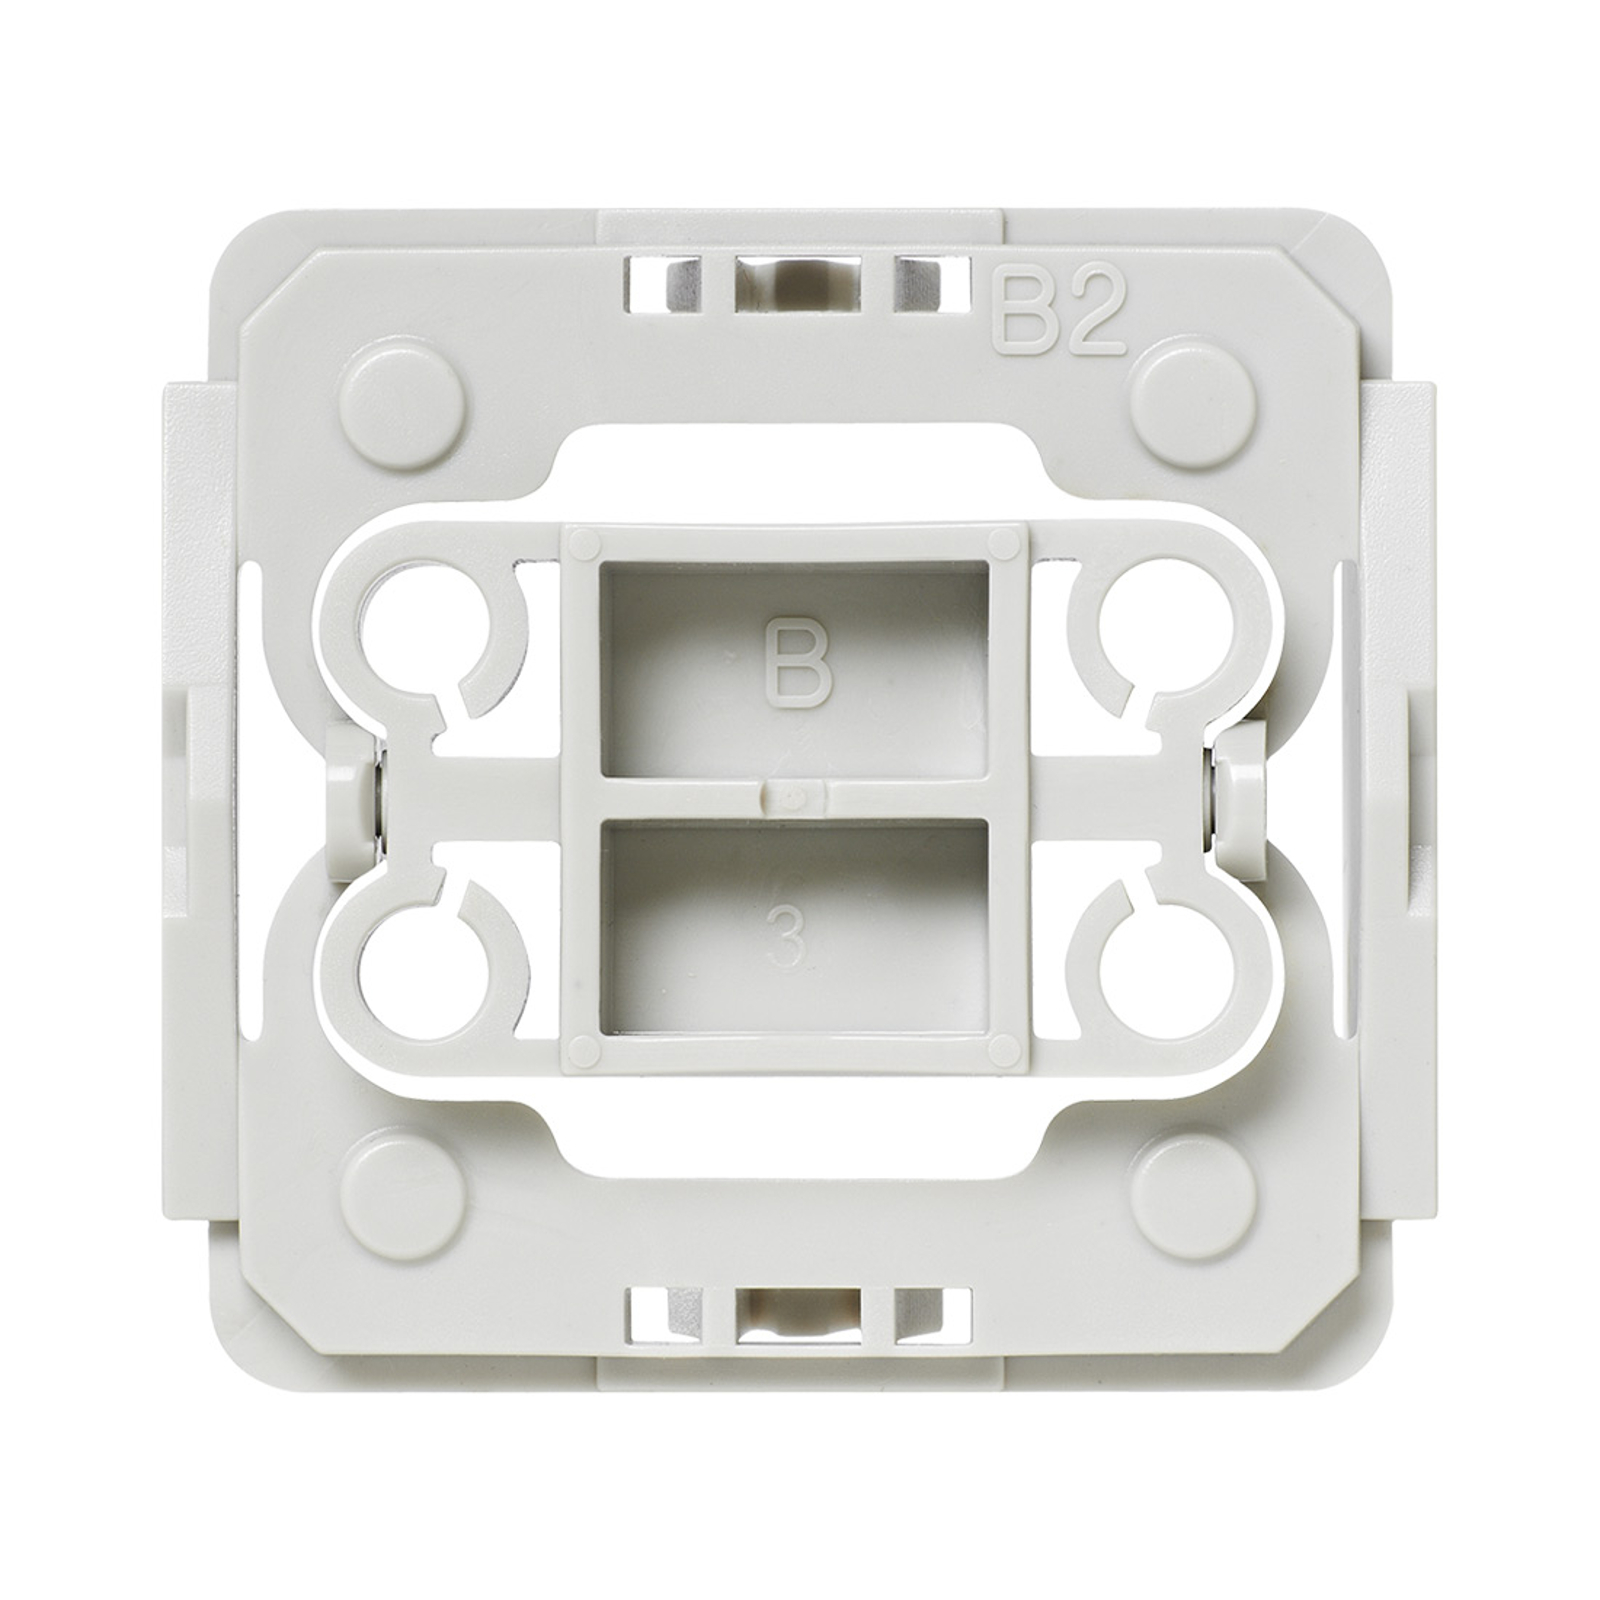 Homematic IP adapter voor Berker schakelaar B2 3x